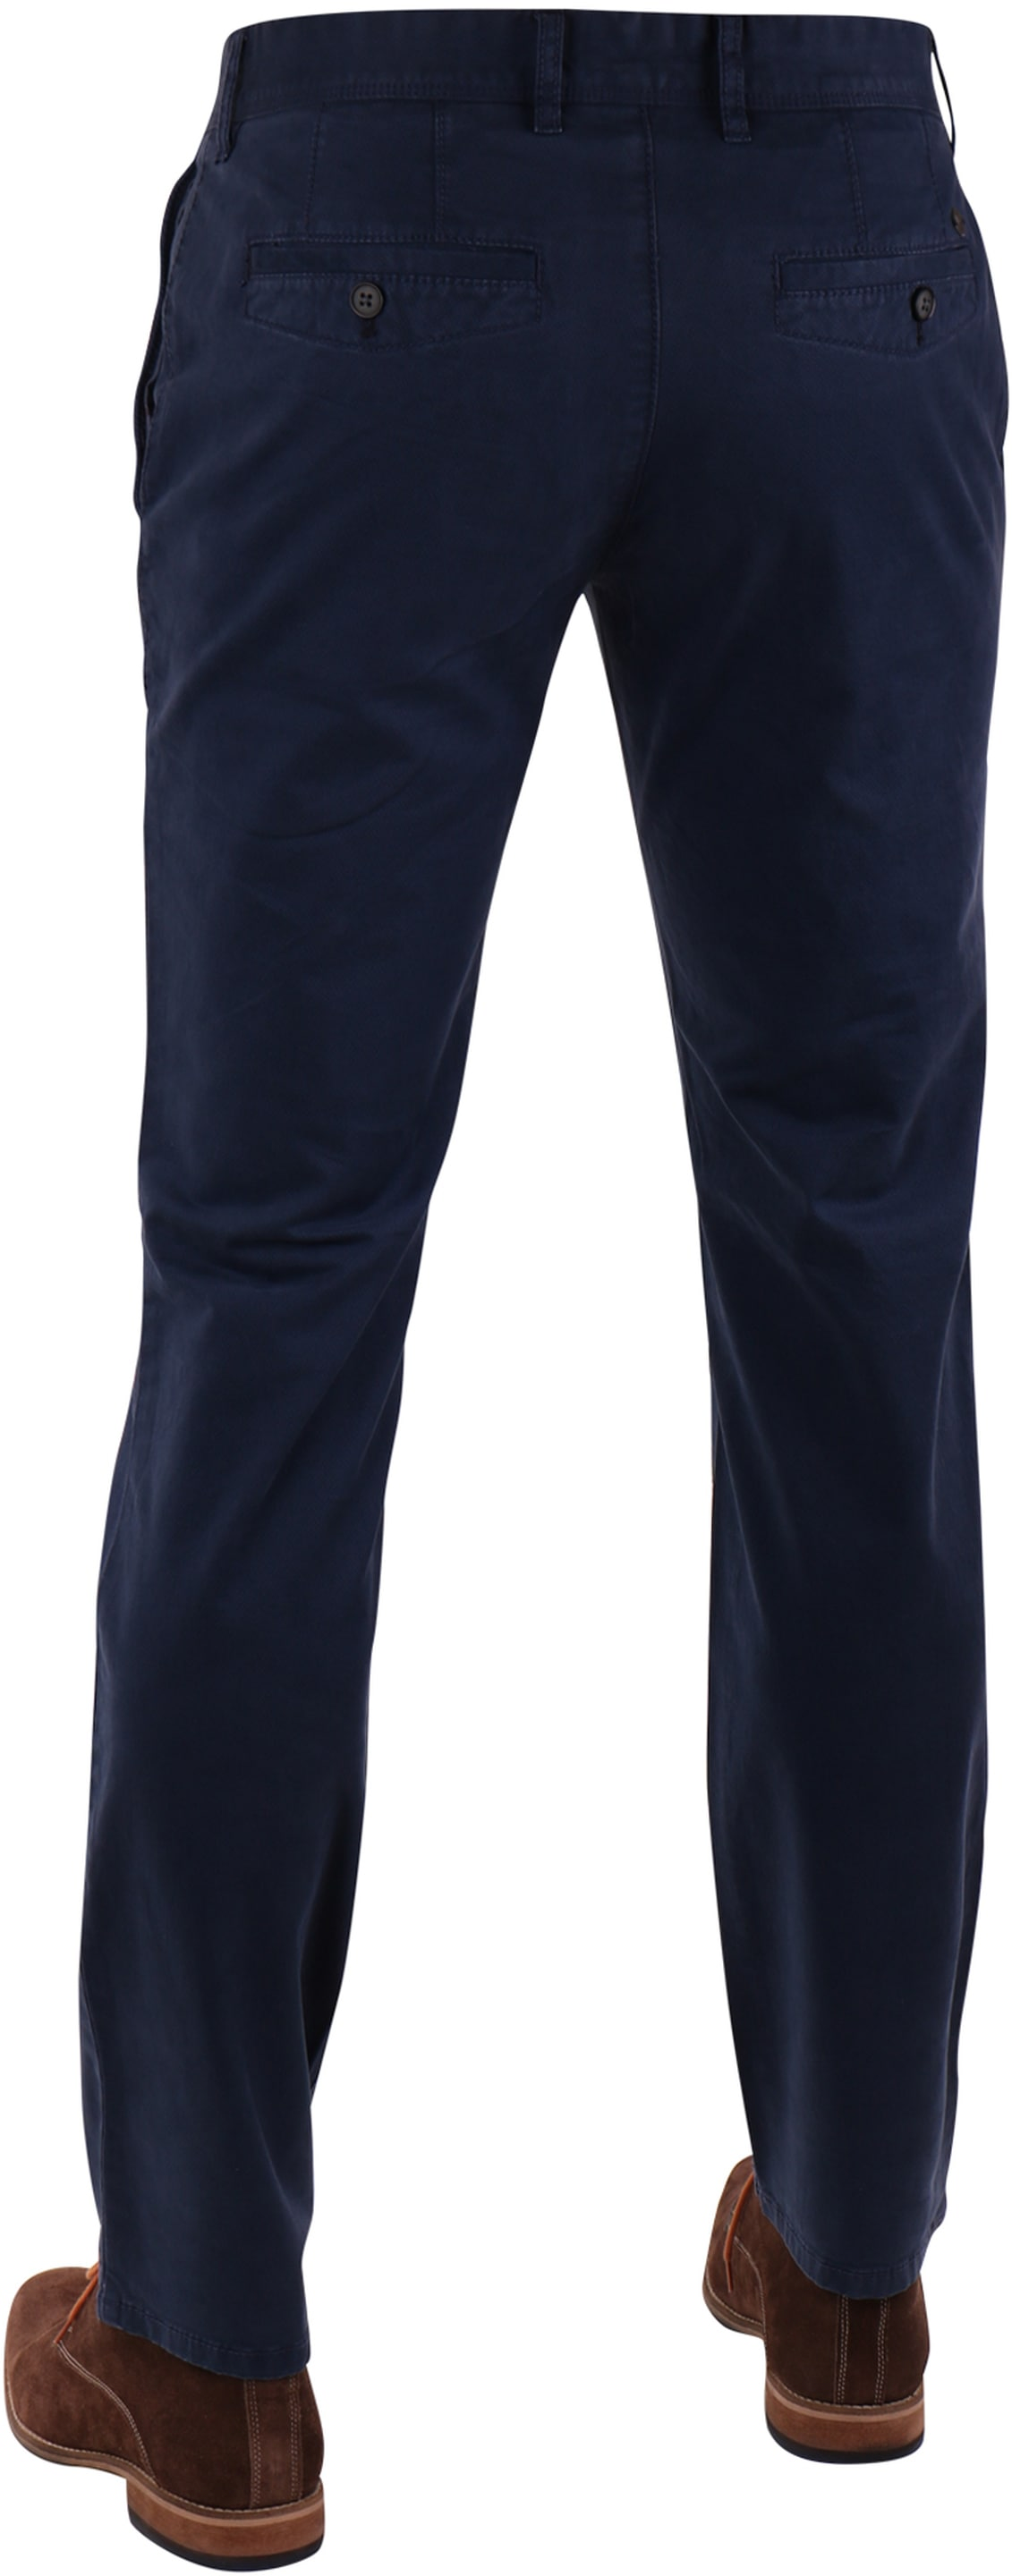 Suitable Chino Broek Donkerblauw Print foto 1